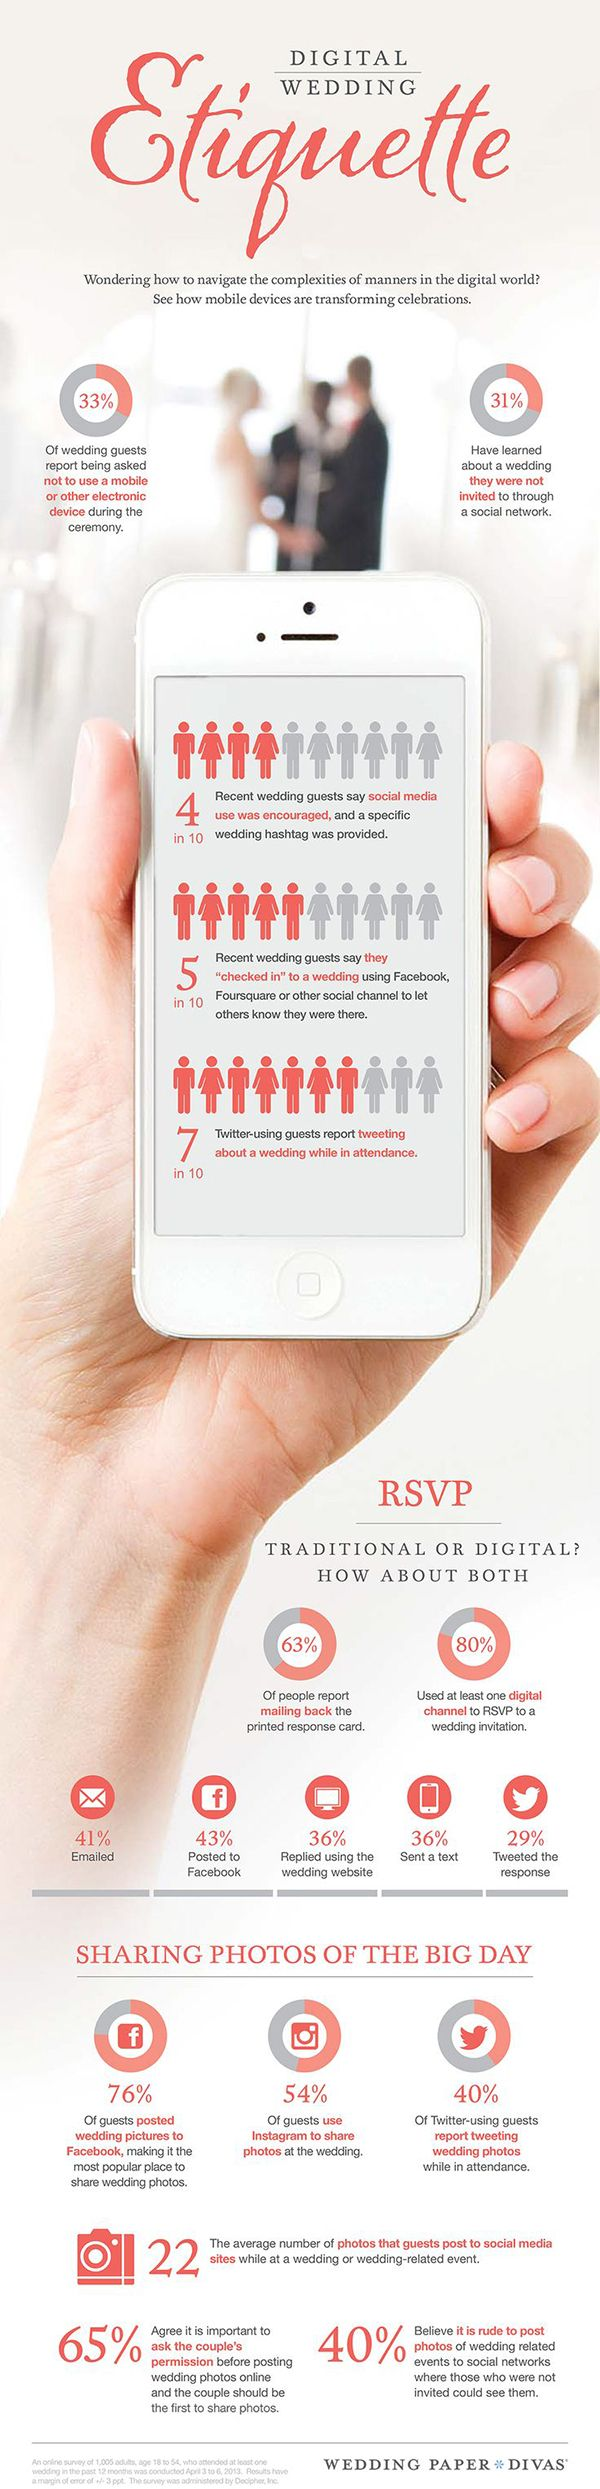 #Wedding Etiquette in a Digital World #Infographic #weddingplanning